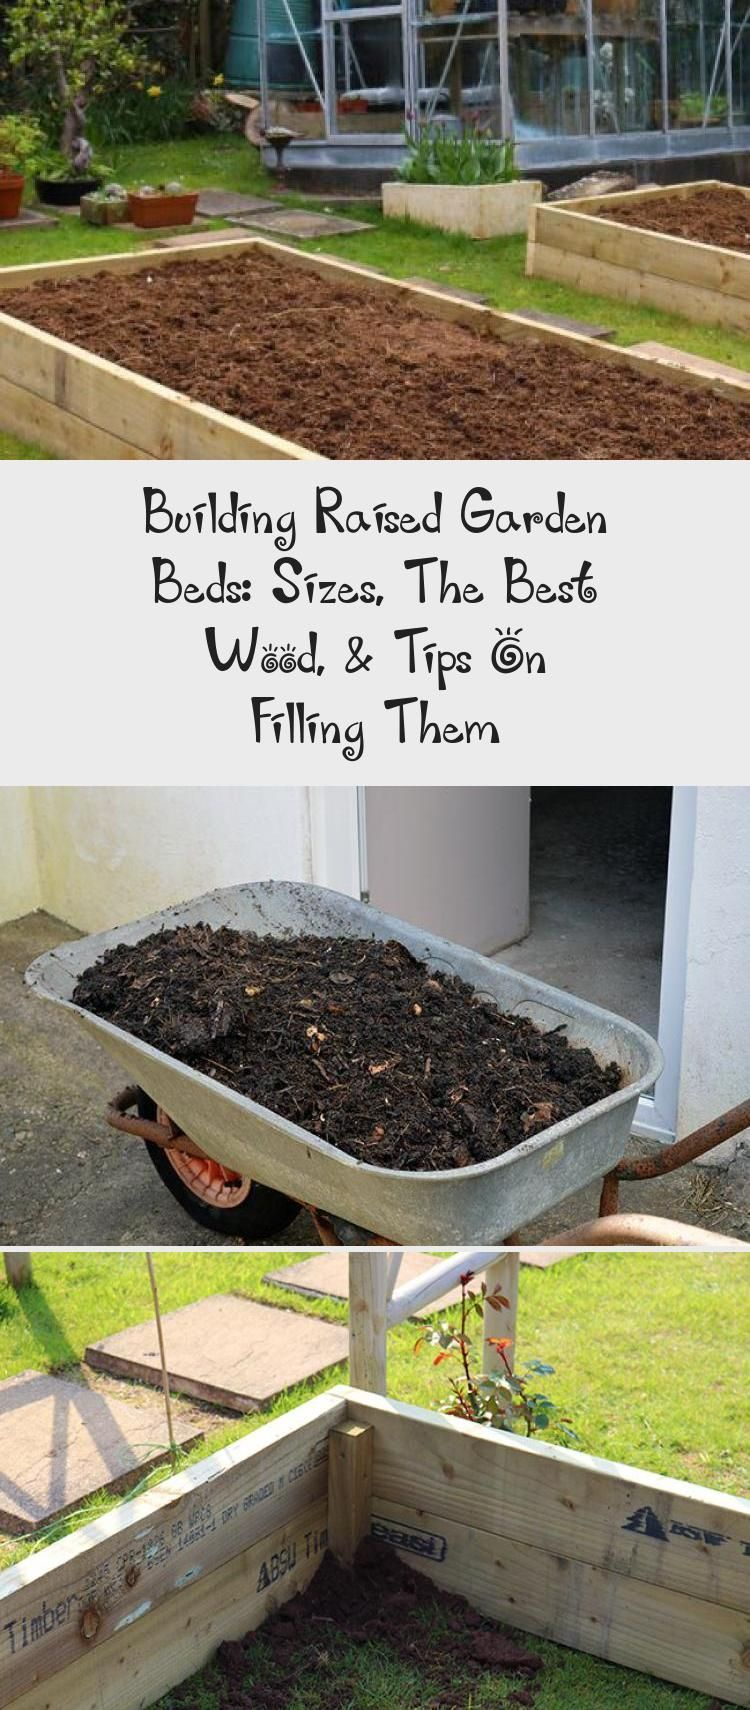 Building Raised Garden Beds Sizes, The Best Wood, & Tips